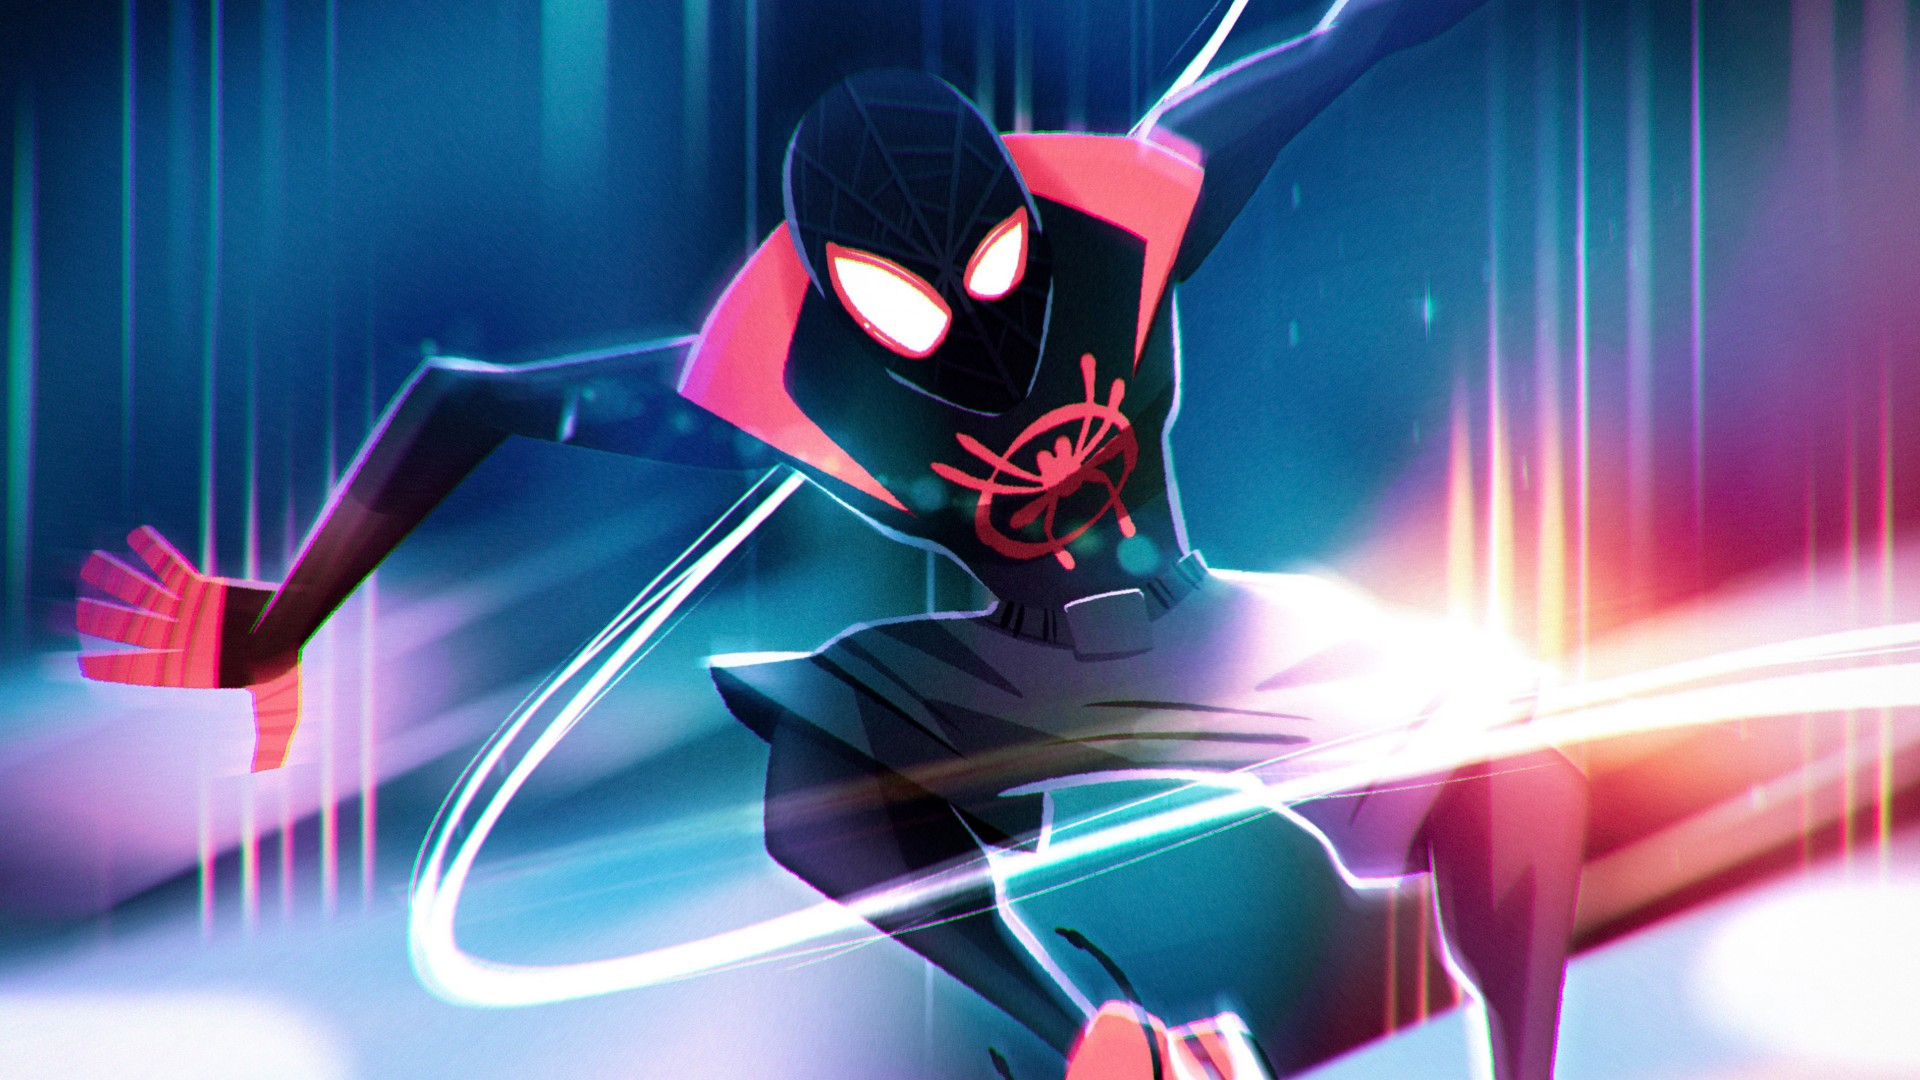 3d Wallpaper For Laptop Full Screen Spider Man Into The Spider Verse Artwork Wallpapers Hd